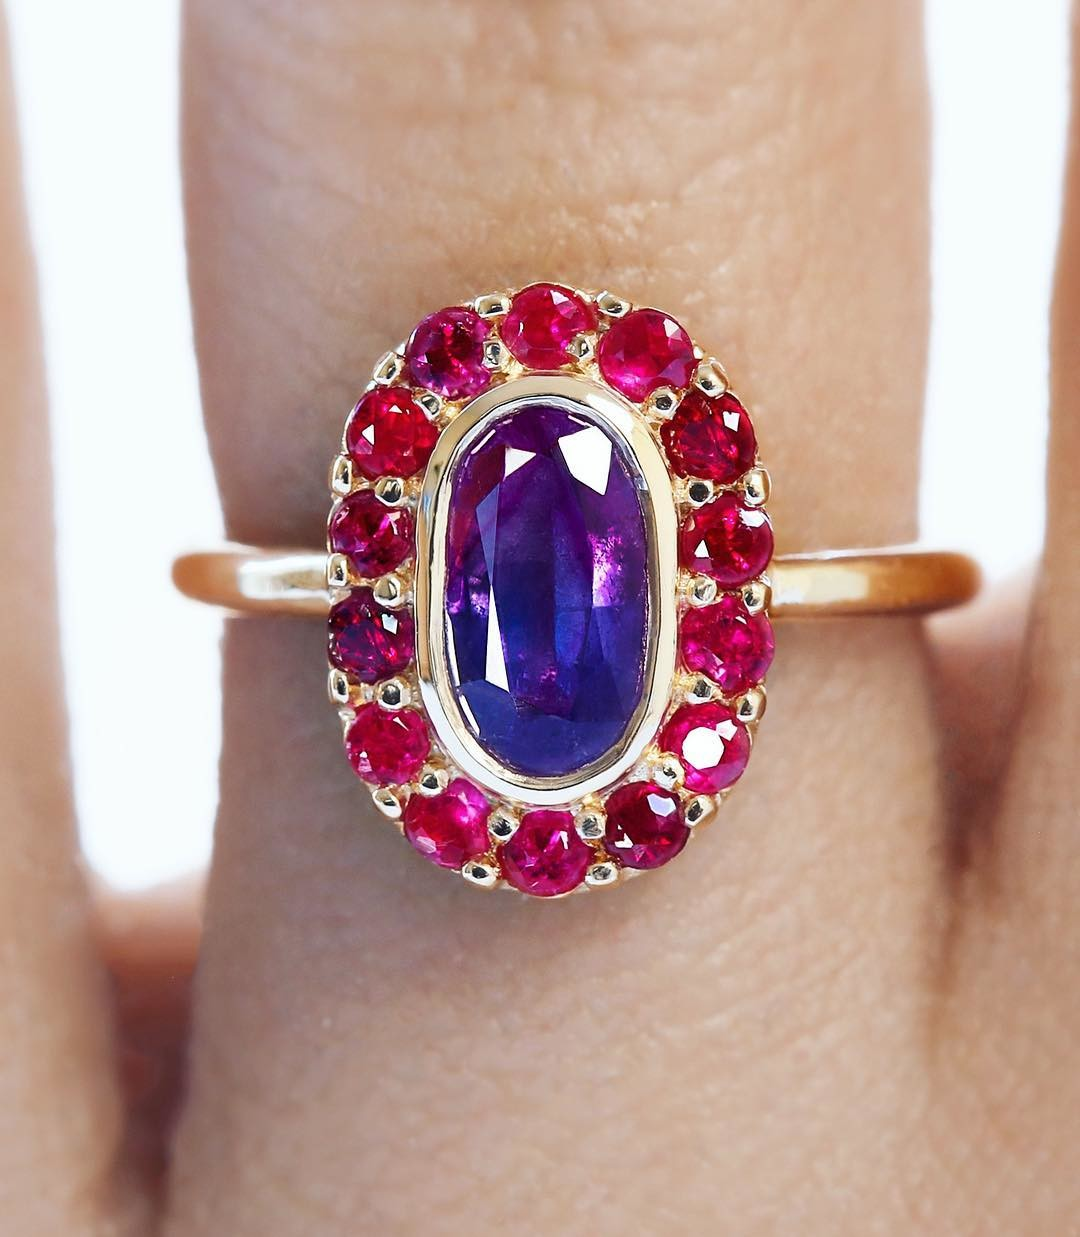 🙈 Rare and almost otherworldly... I am pleased to share this amazing Tri-Color Natural Sapphire and Ruby Ring. Hand selected, this